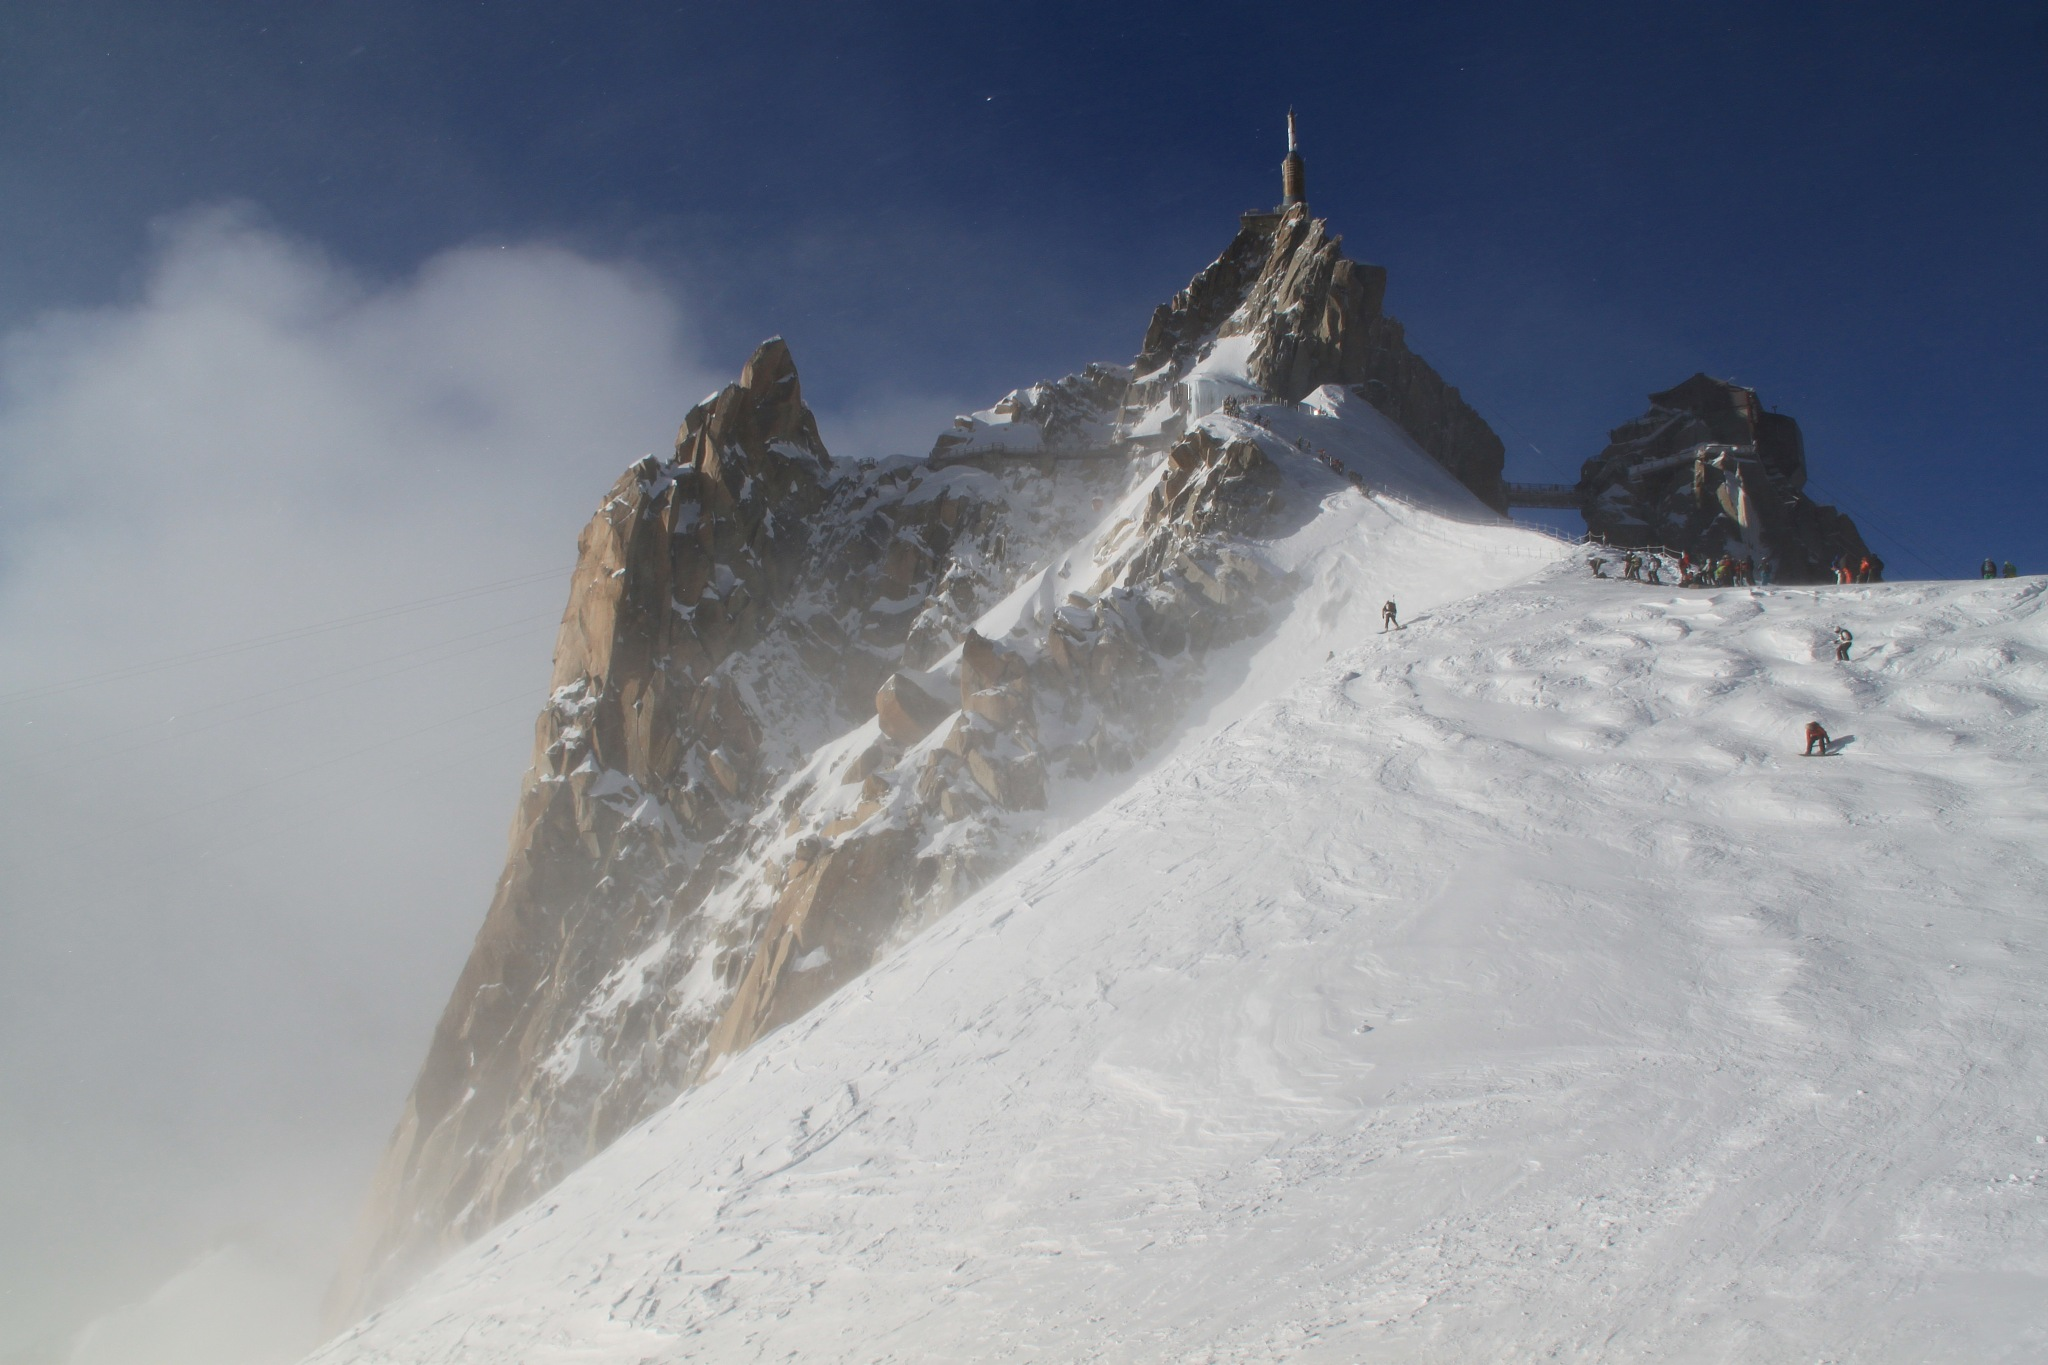 Vallee Blanche by tedharinishi